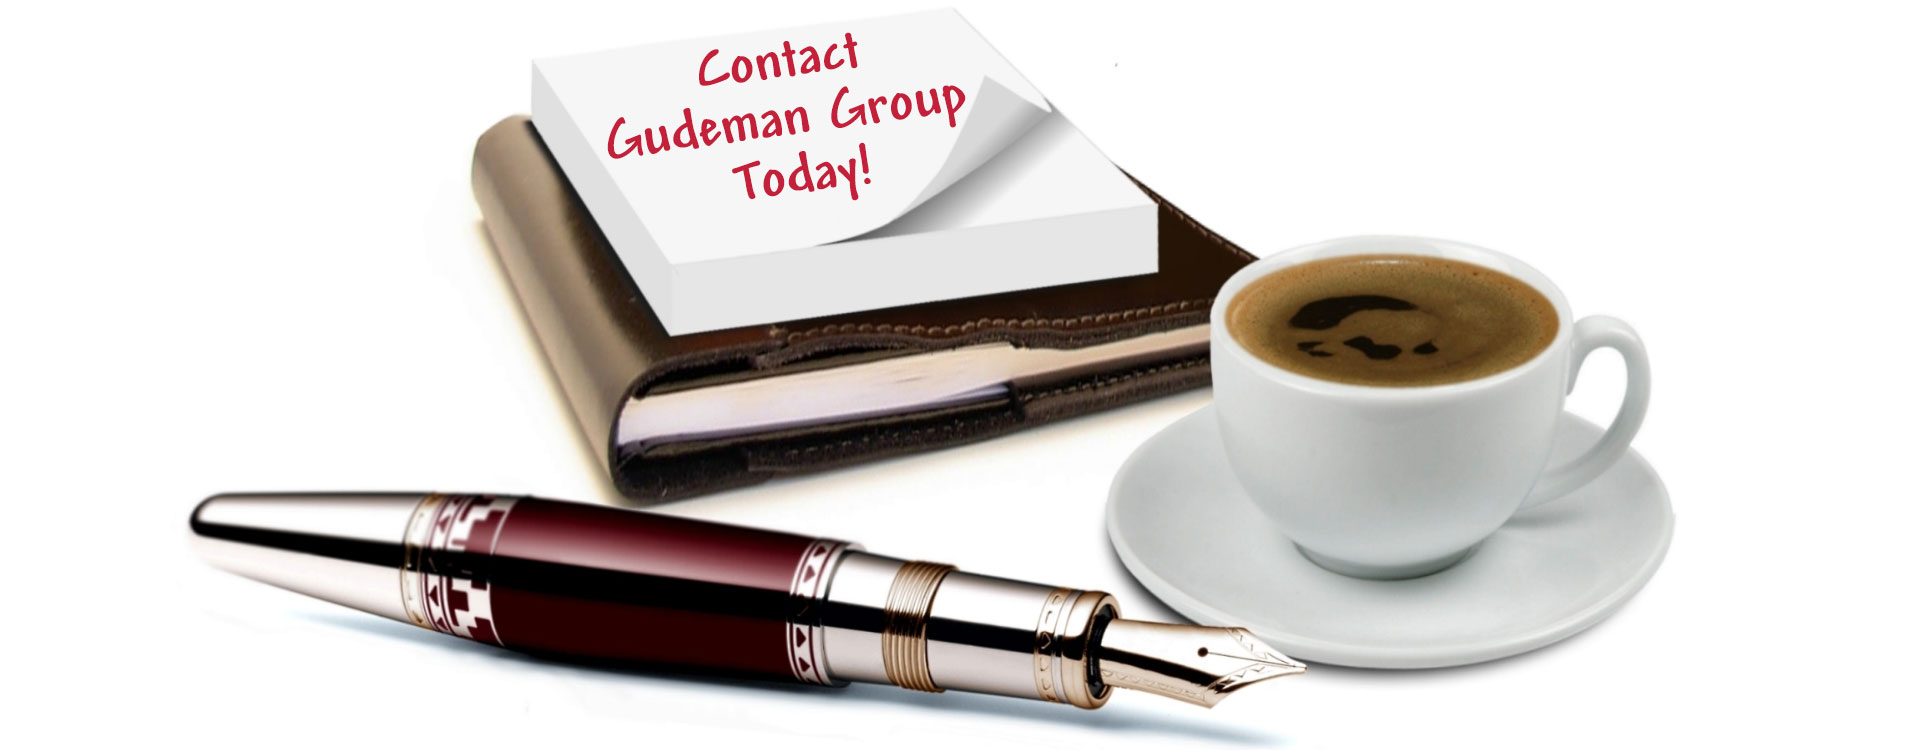 Contact Gudeman Group